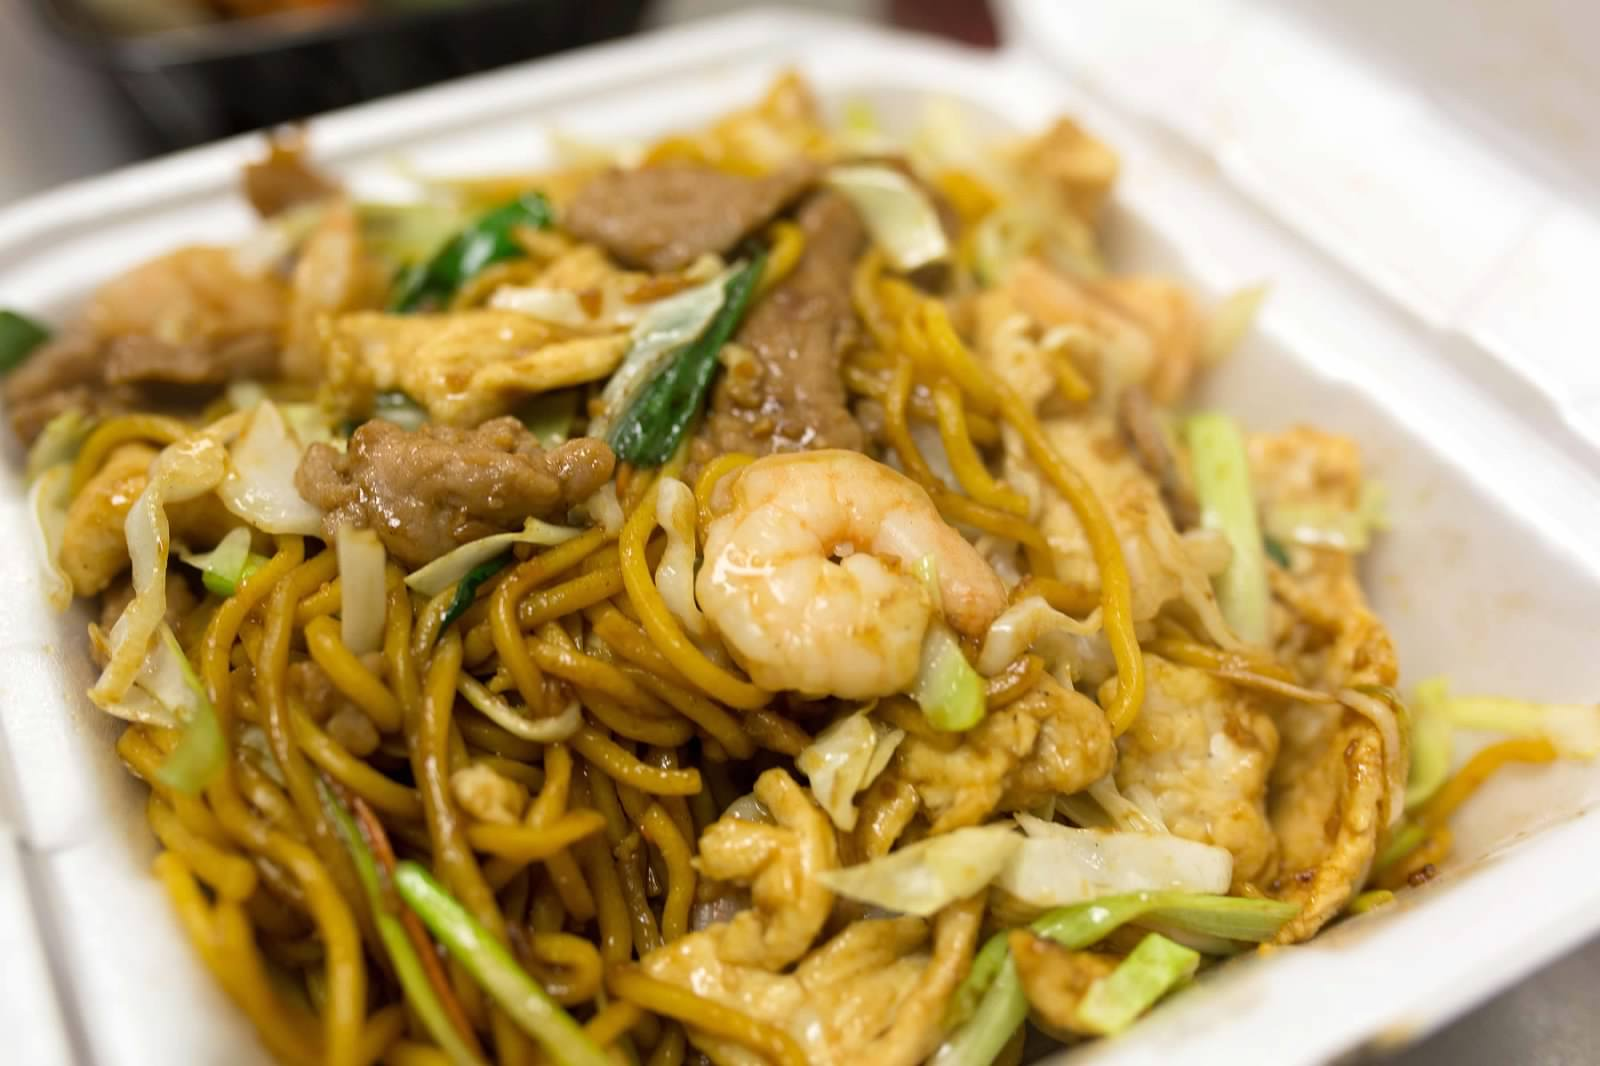 N5. House Special Lo Mein